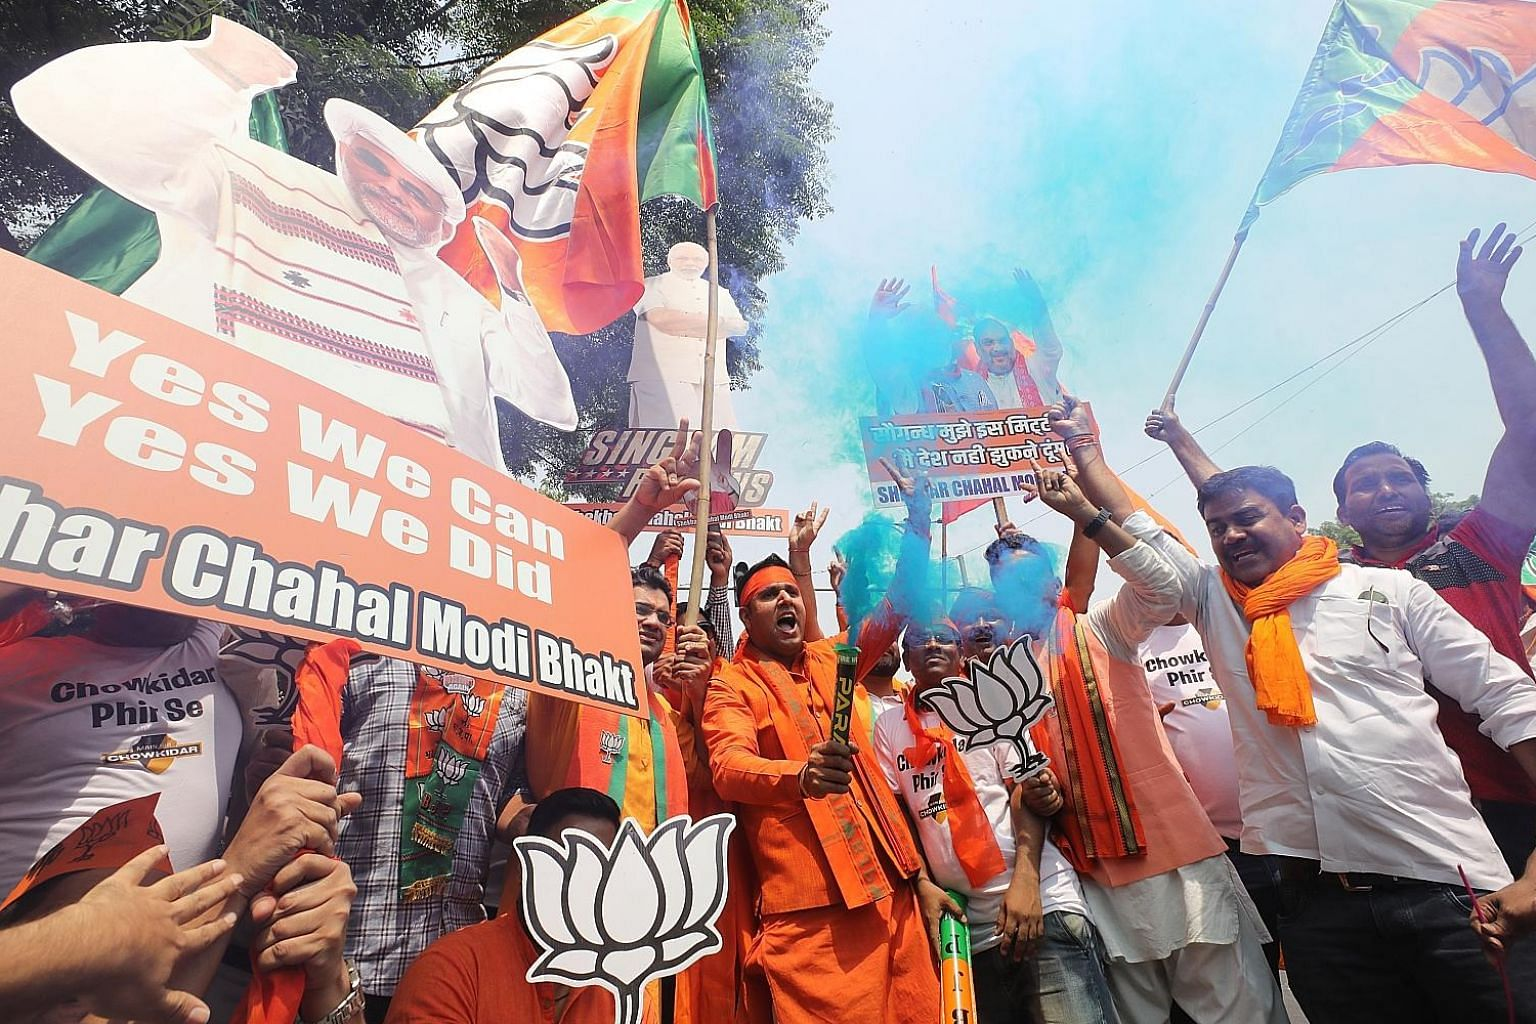 Supporters celebrating Bharatiya Janata Party's (BJP) win in New Delhi yesterday. Not only did the party seem set to improve on its 2014 showing, but it also kept the opposition Congress party down to no more than a marginally better performance than